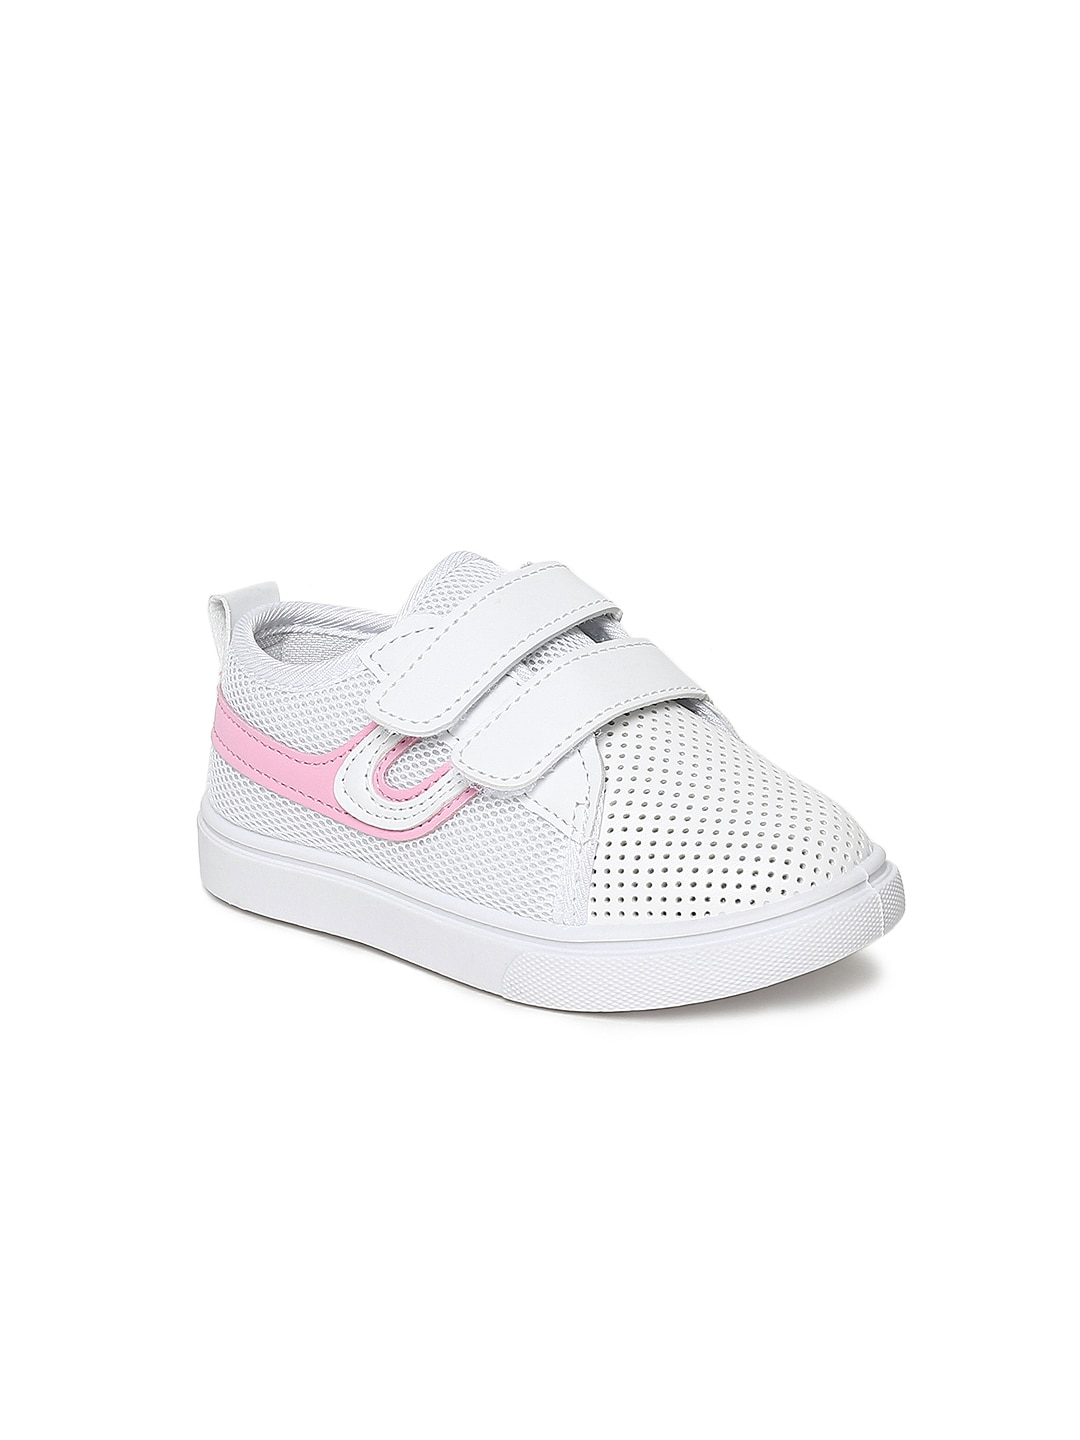 75b99cb0c11d9 Girls Shoes - Online Shopping of Shoes for Girls in India